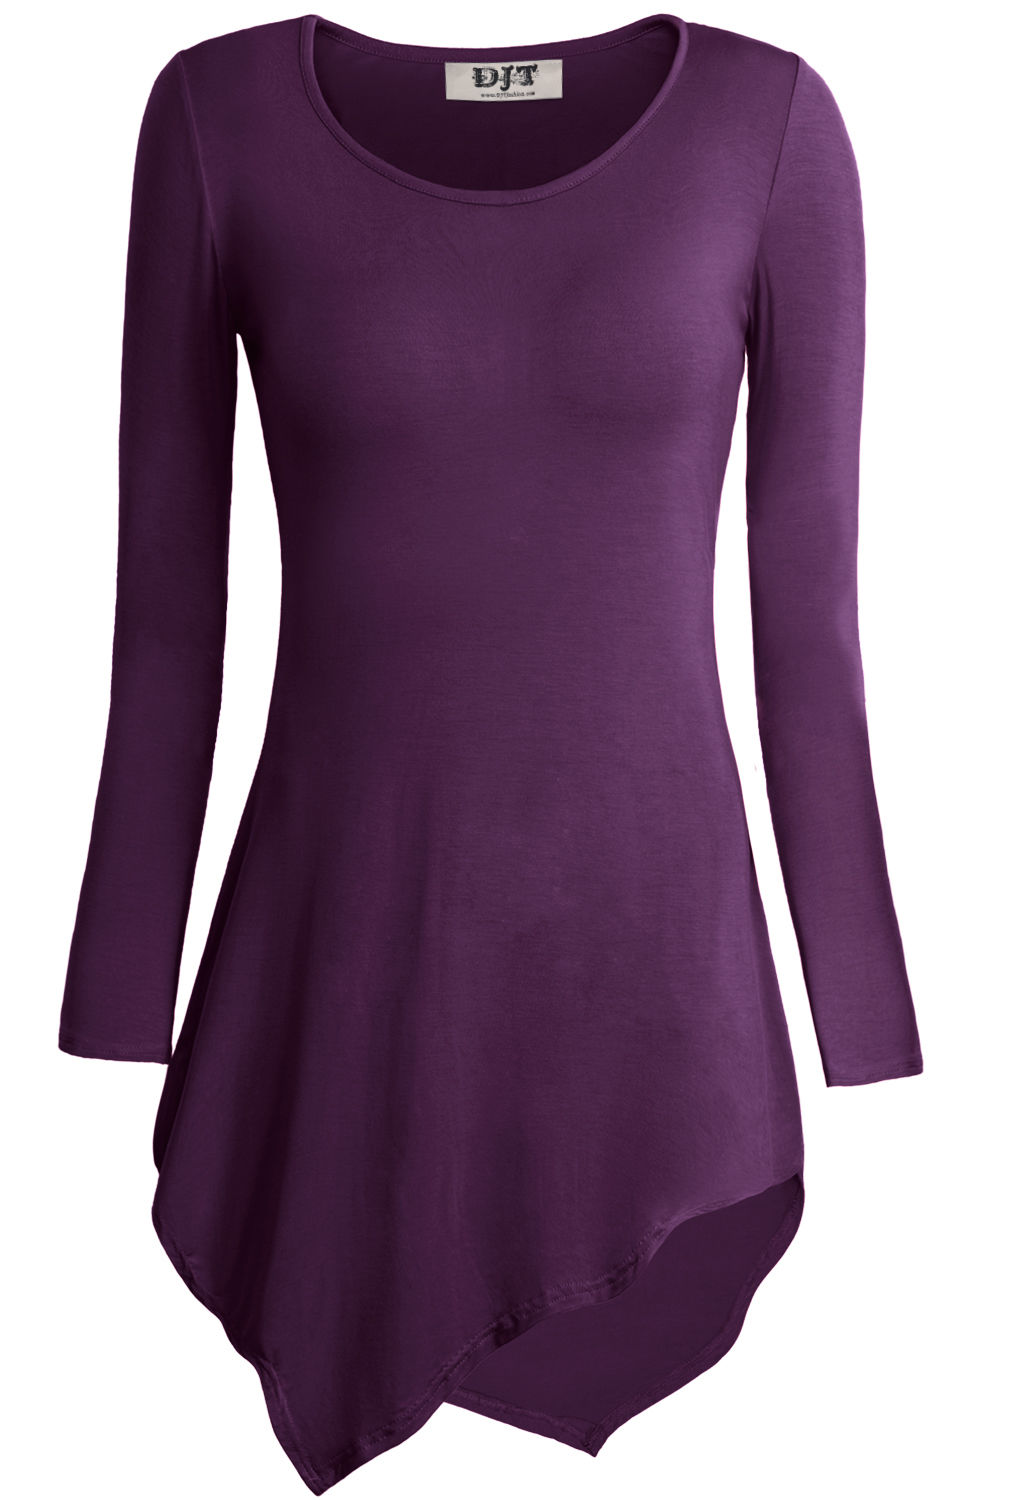 Find great deals on eBay for womens long sleeve tunic tops. Shop with confidence.